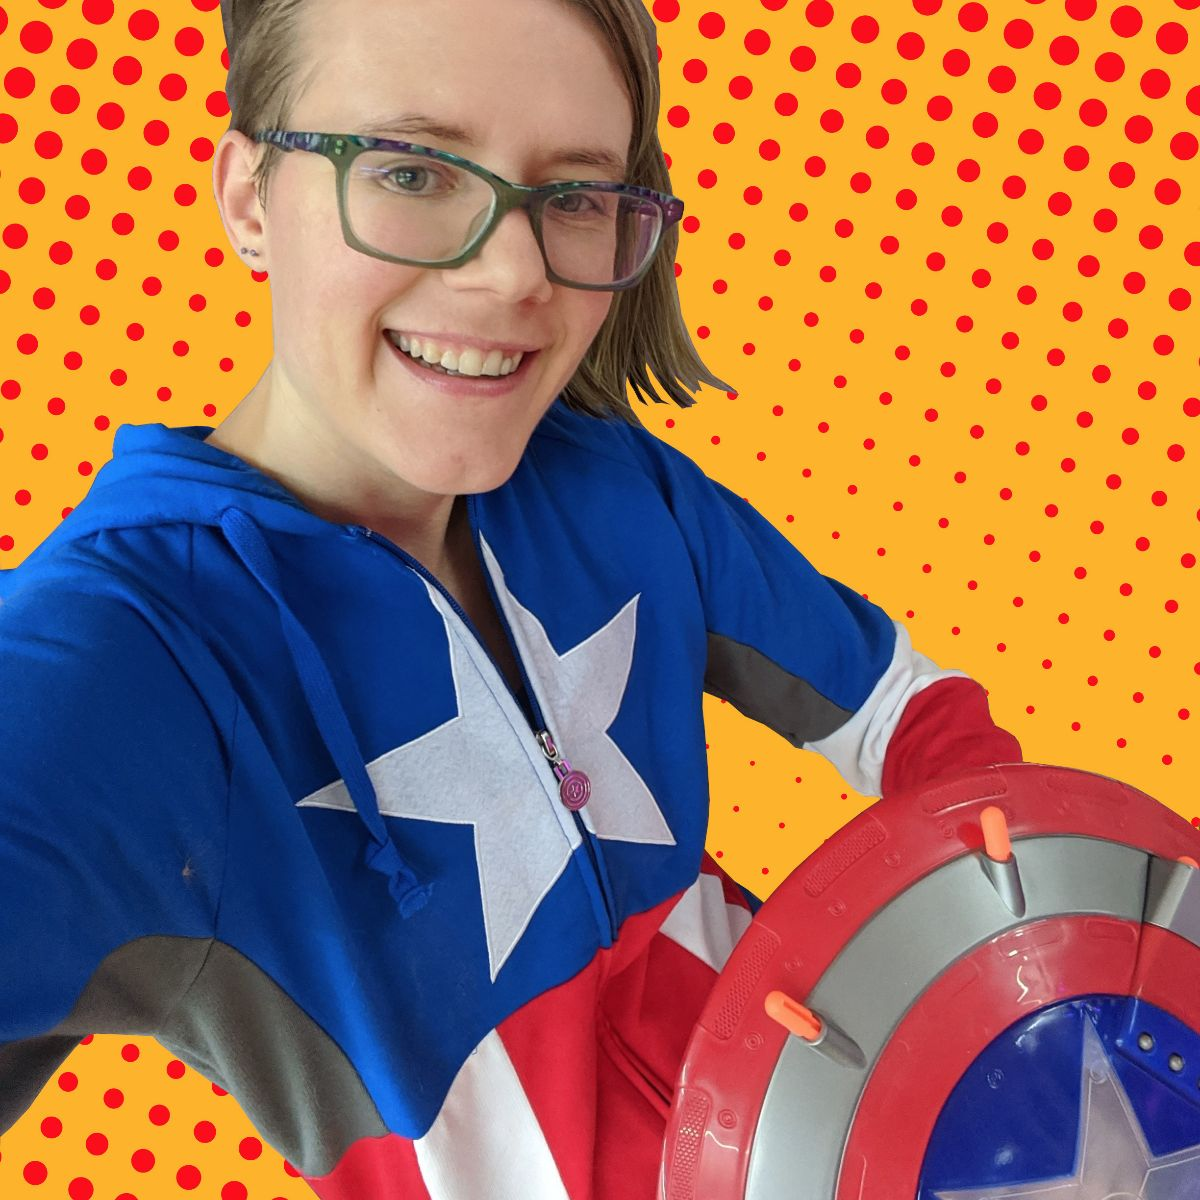 Me dressed up as Captain America for Halloween